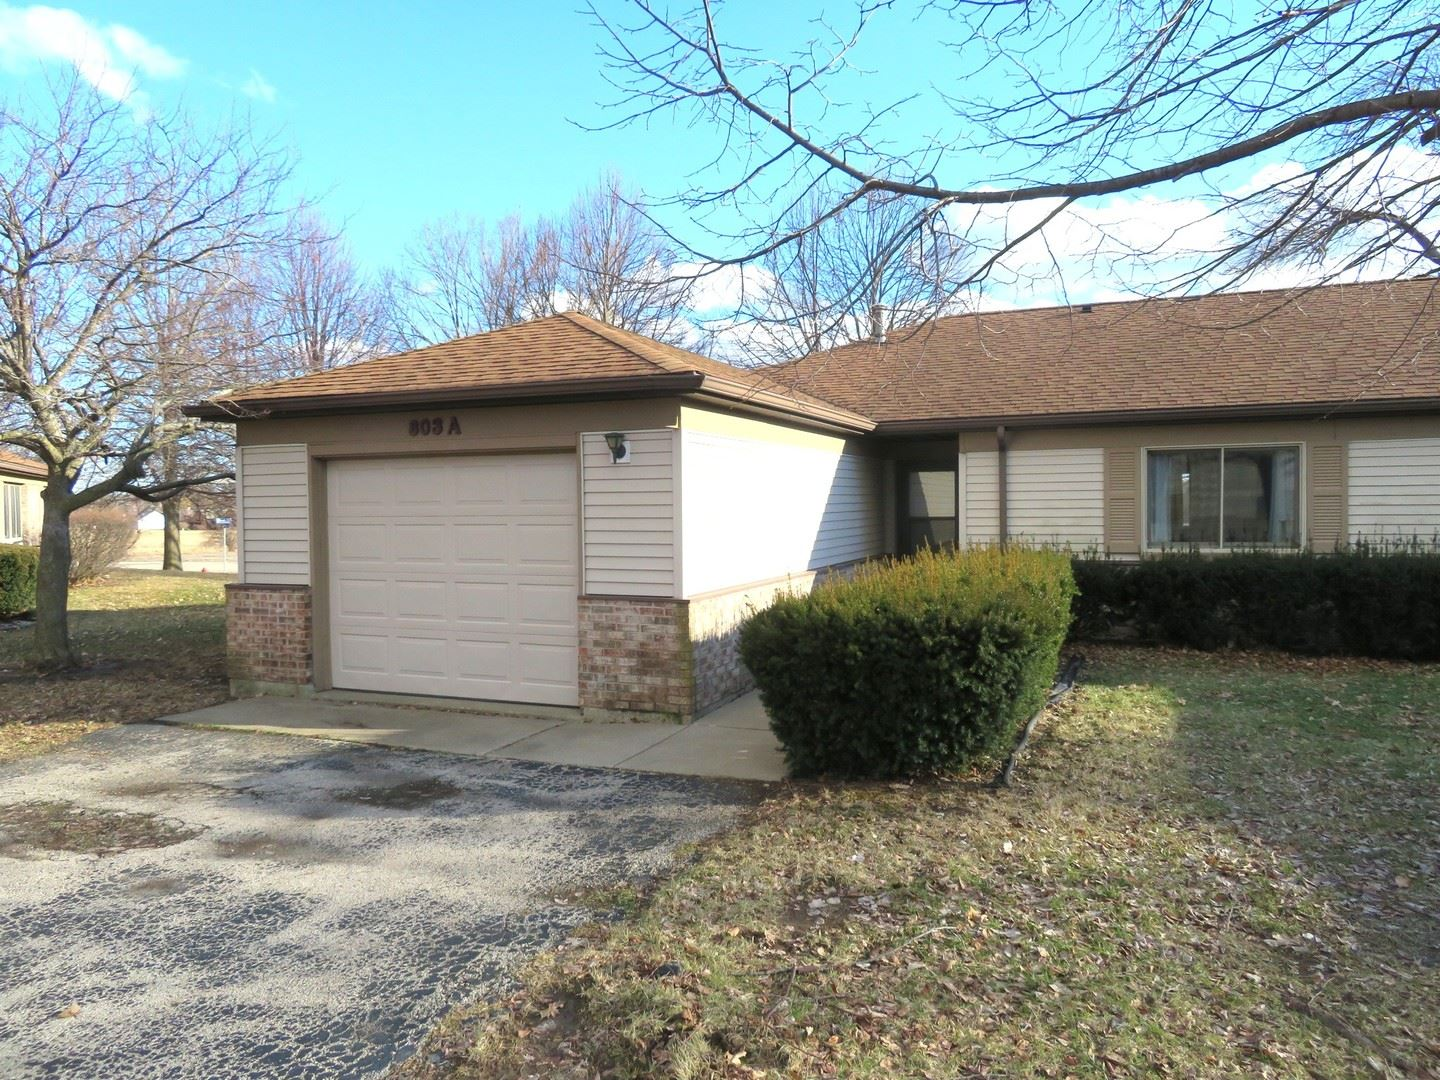 803 Coventry Lane #A, Sterling, IL 61081 - #: 10311084